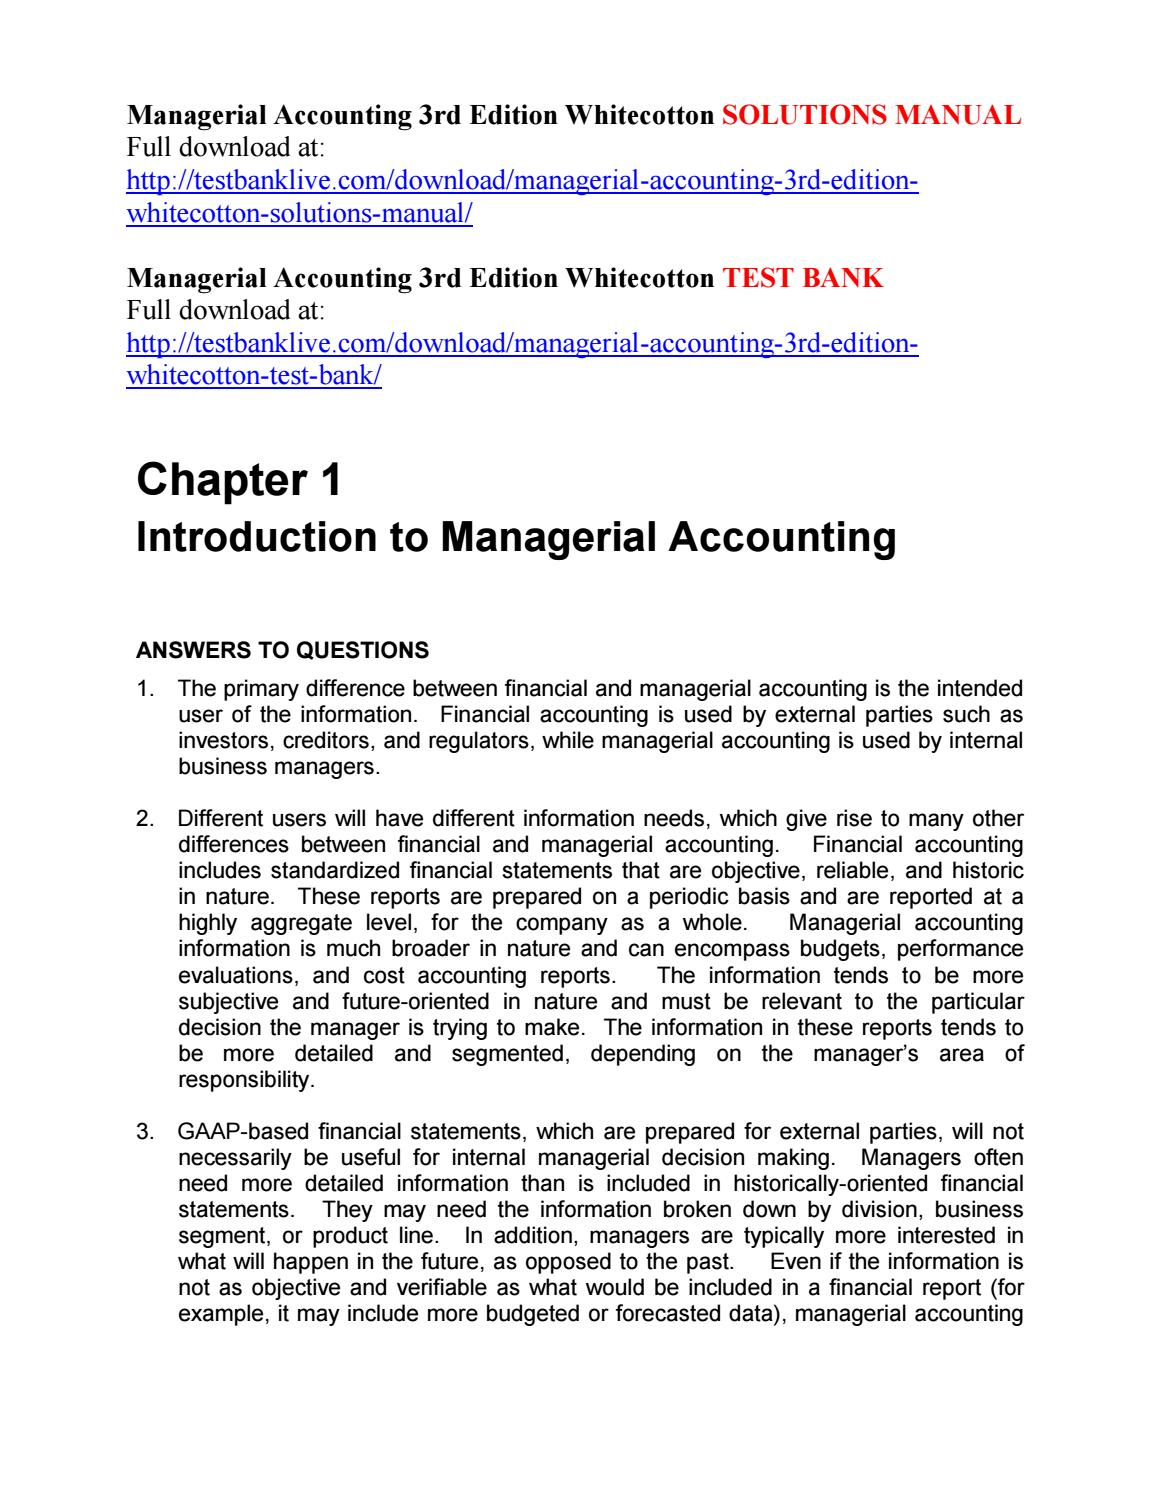 Managerial accounting 3rd edition whitecotton solutions manual by asdfgh111  - issuu